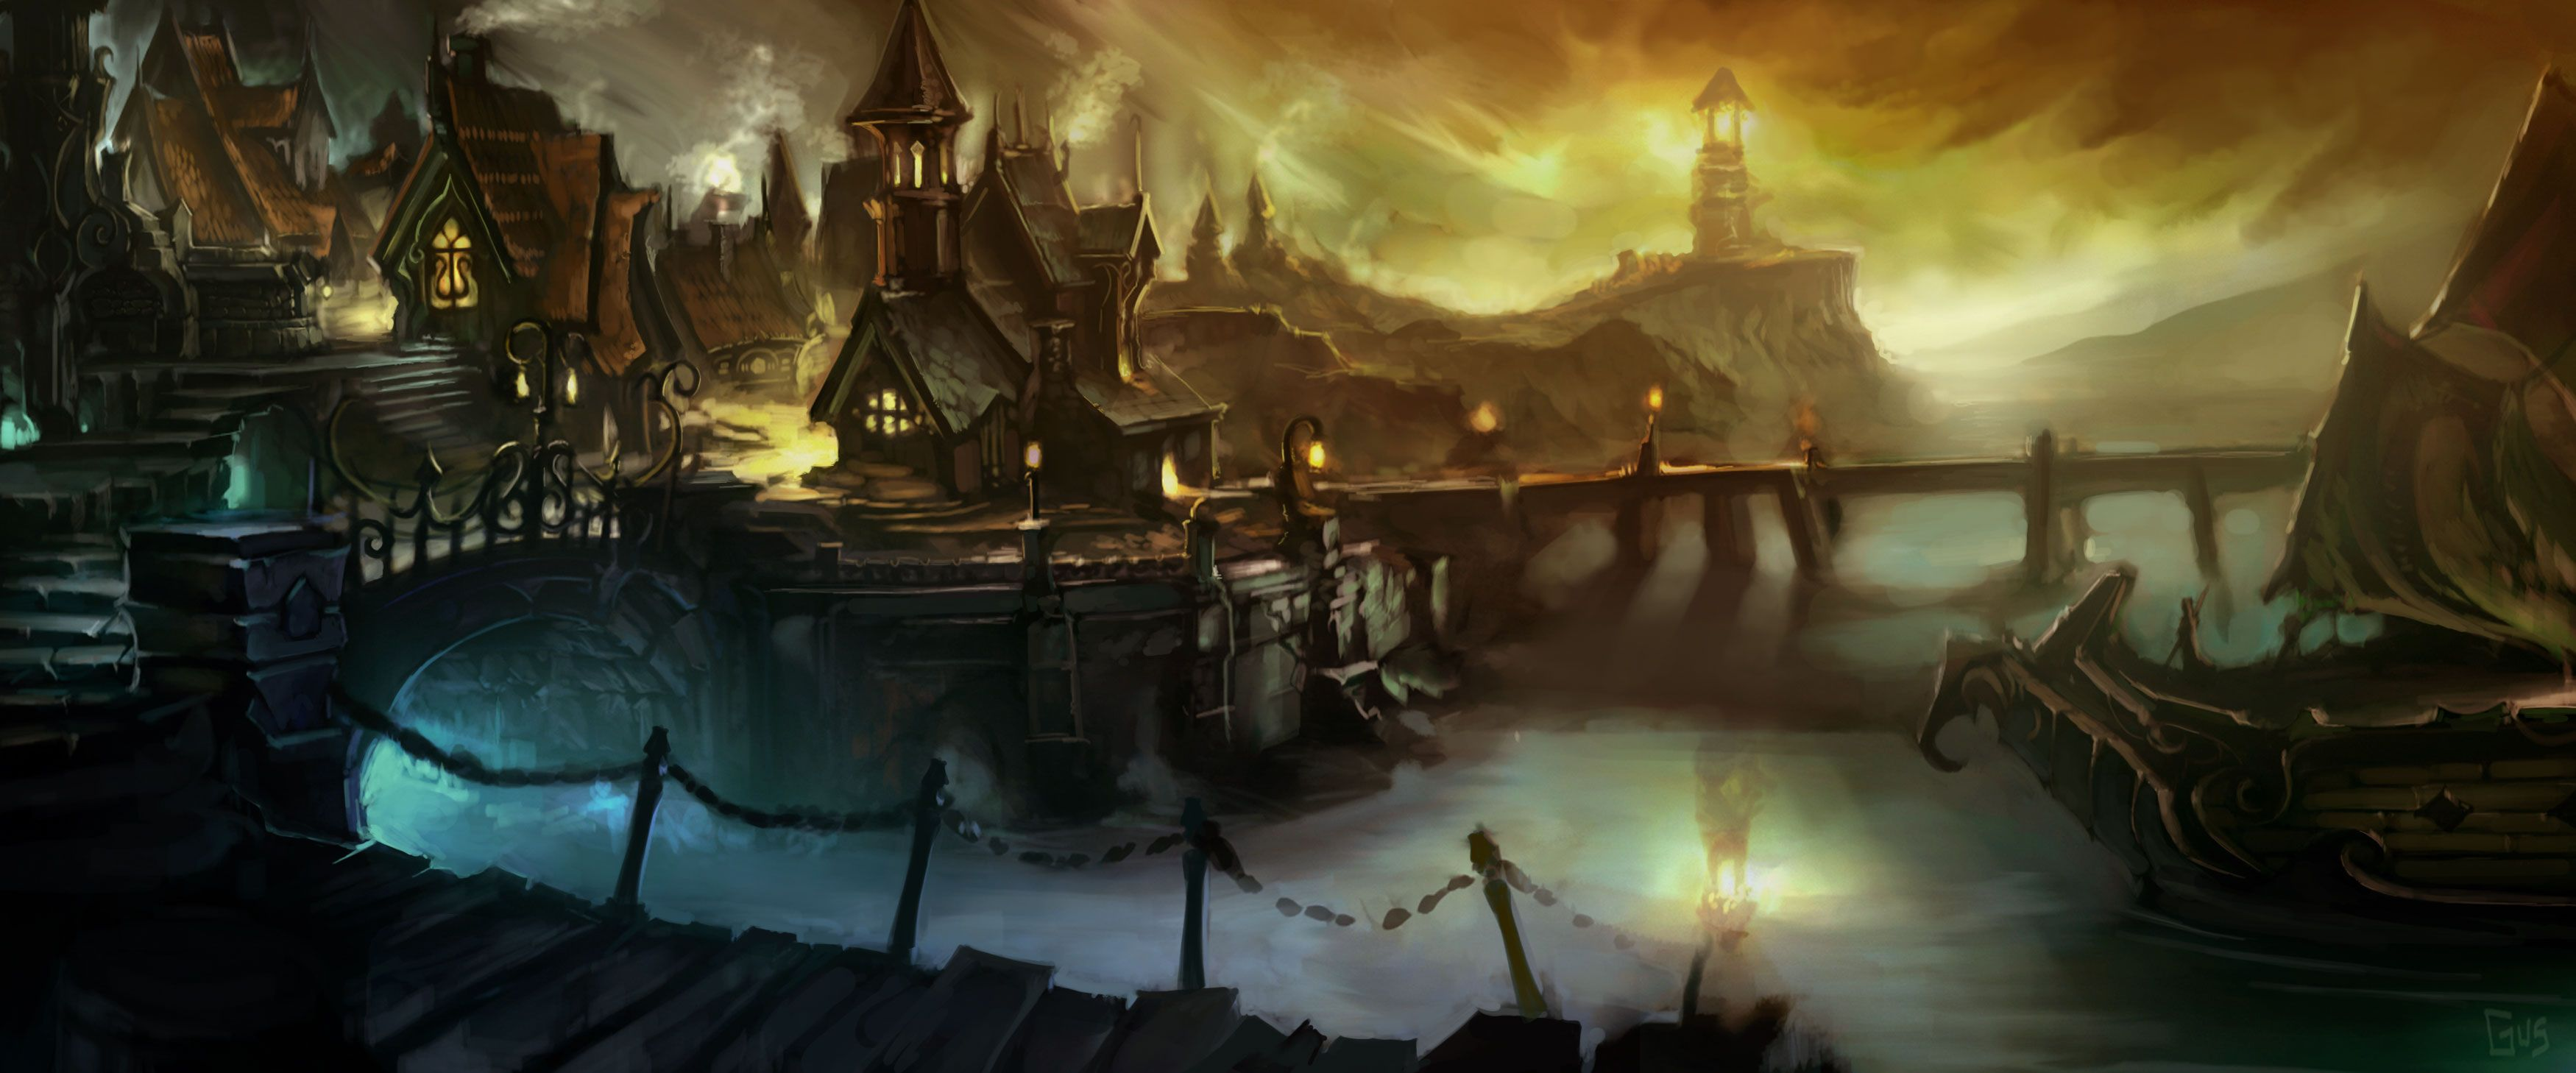 Warcraft background art google search rpg maps pinterest warcraft background art google search gumiabroncs Image collections